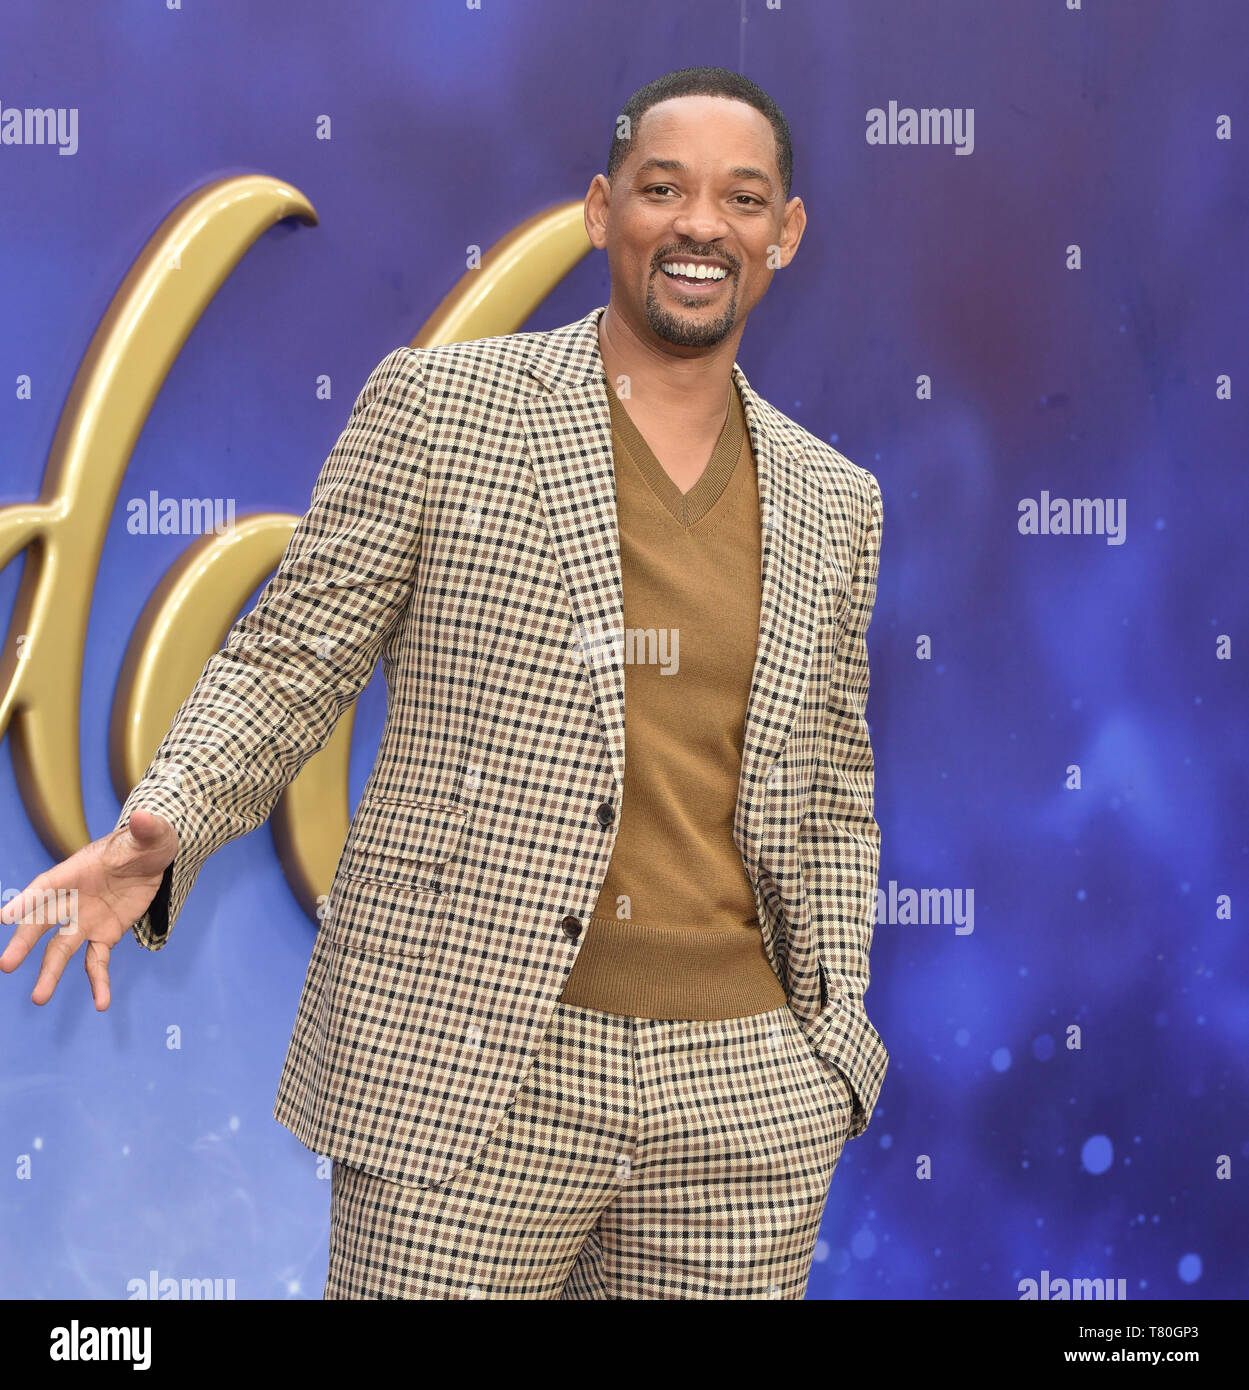 Will Smith attends the European Gala of 'Aladdin' at the Odeon Luxe Leicester Square in London, England - Stock Image